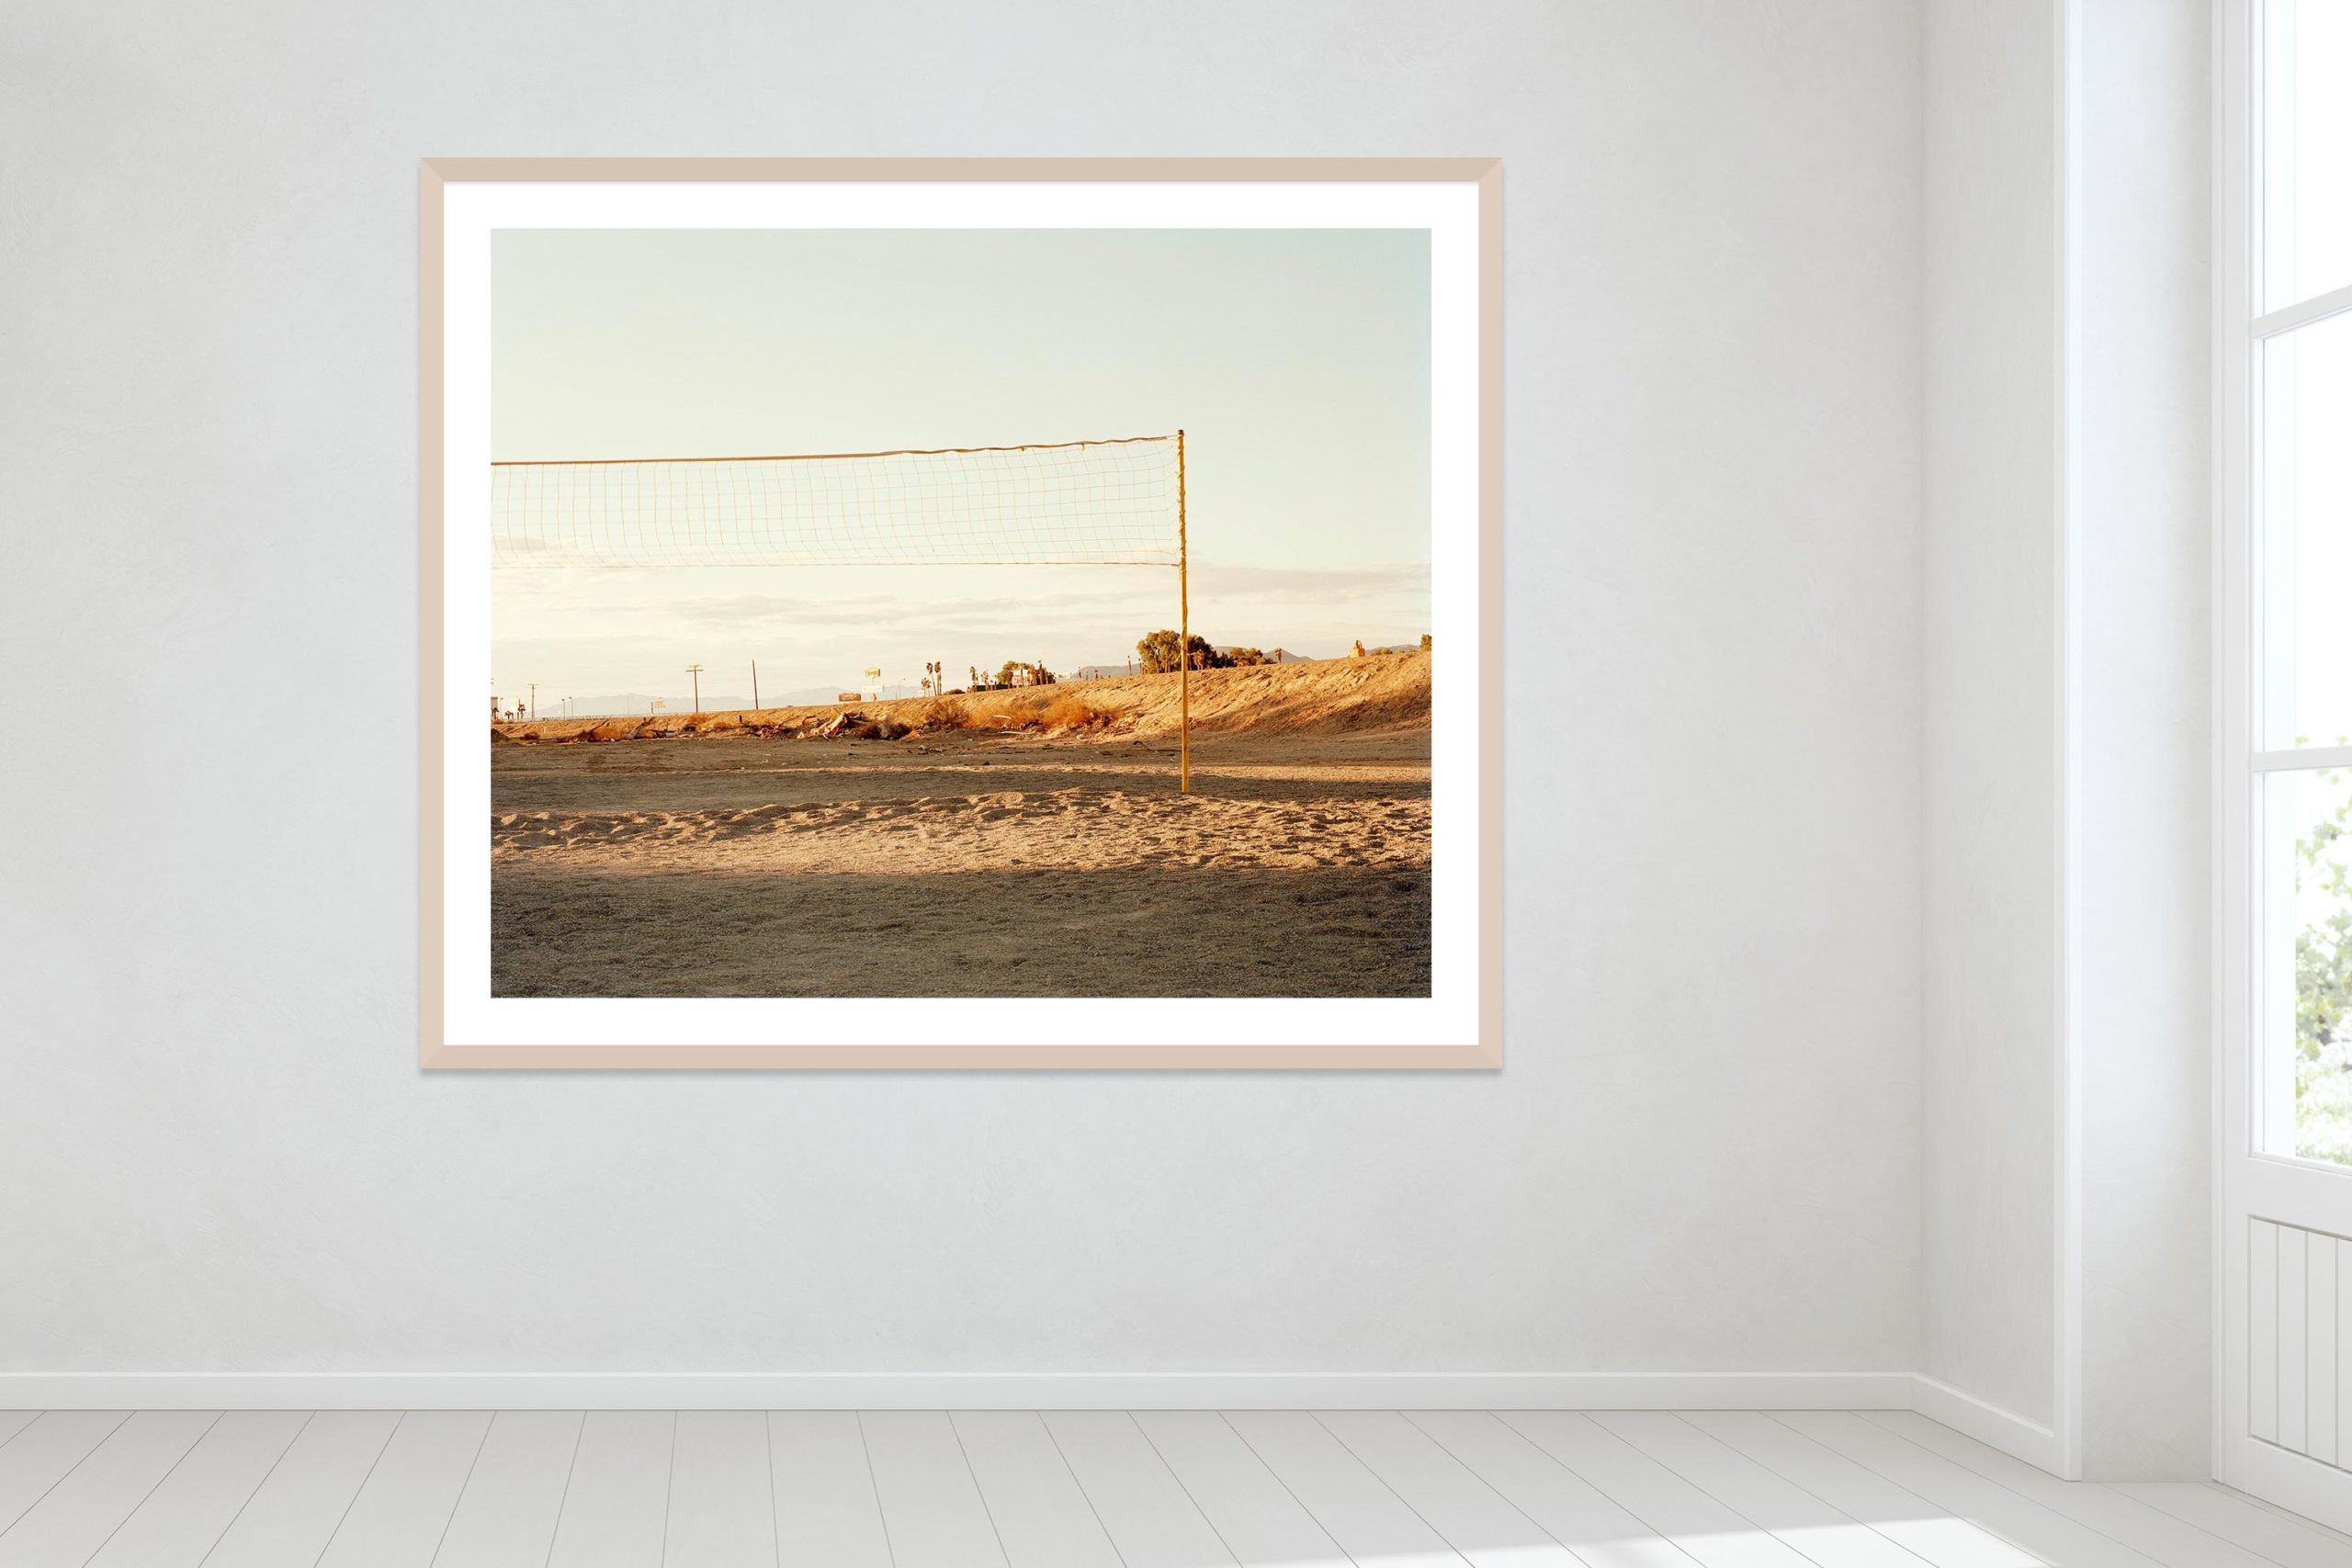 I Knew These People - Timber Frame - Oh Mojave Collection - Fine Art Photography by Toby Dixon